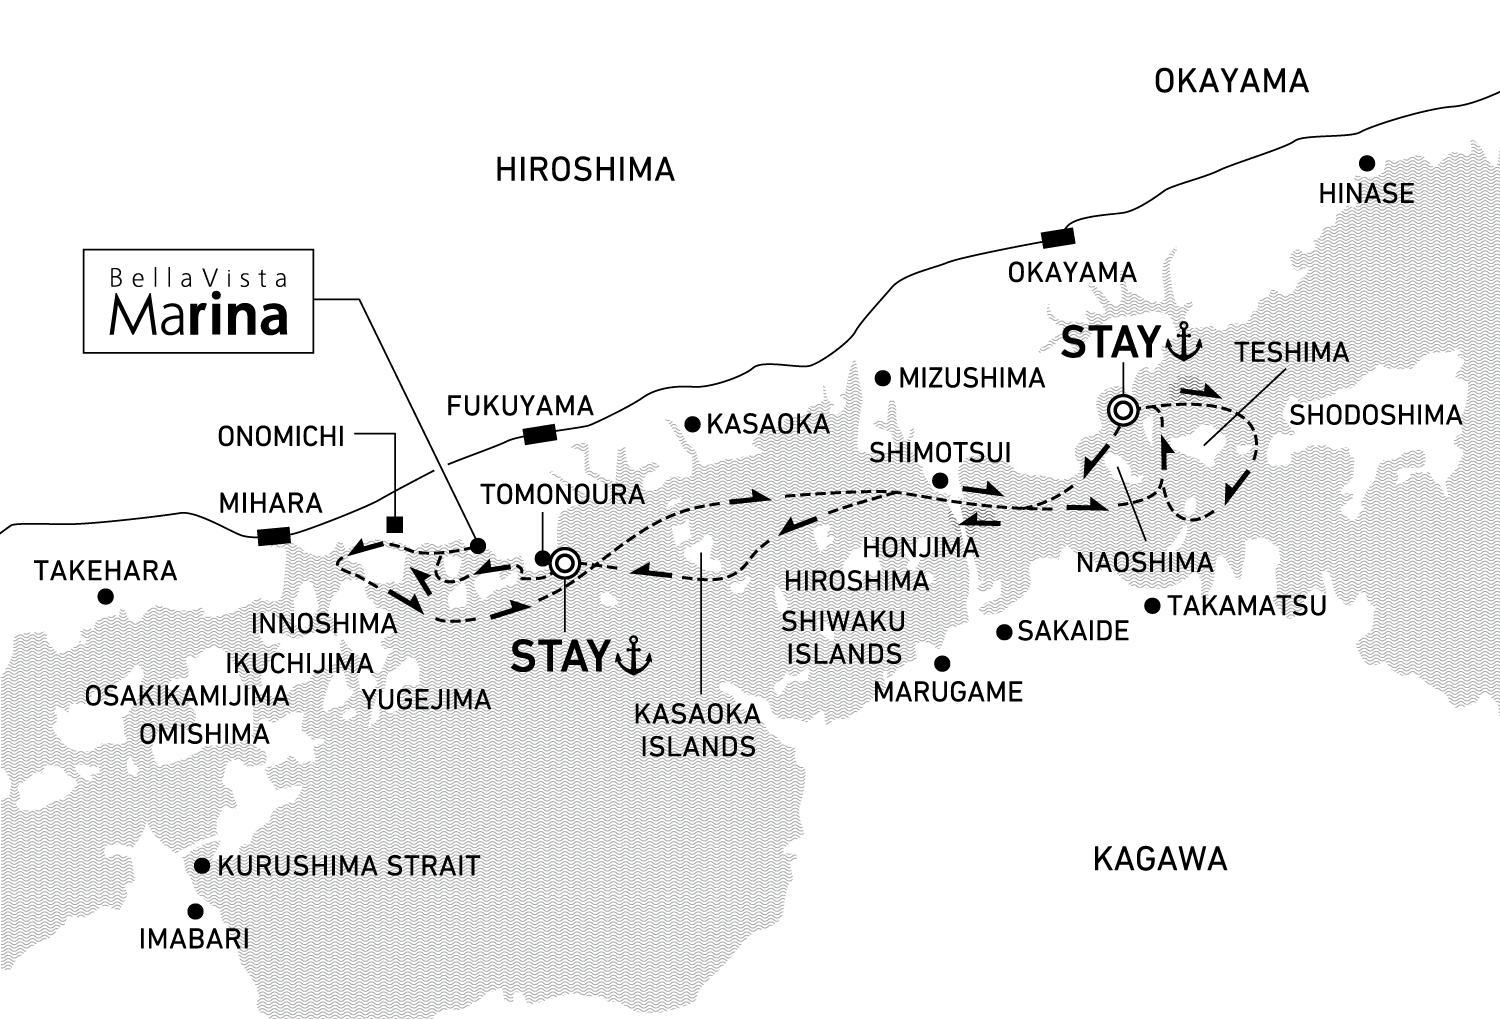 A three-day voyage to discover natural beauty and the bounty of islands 2 nights / anchor offshore at Tamano and Tomonoura